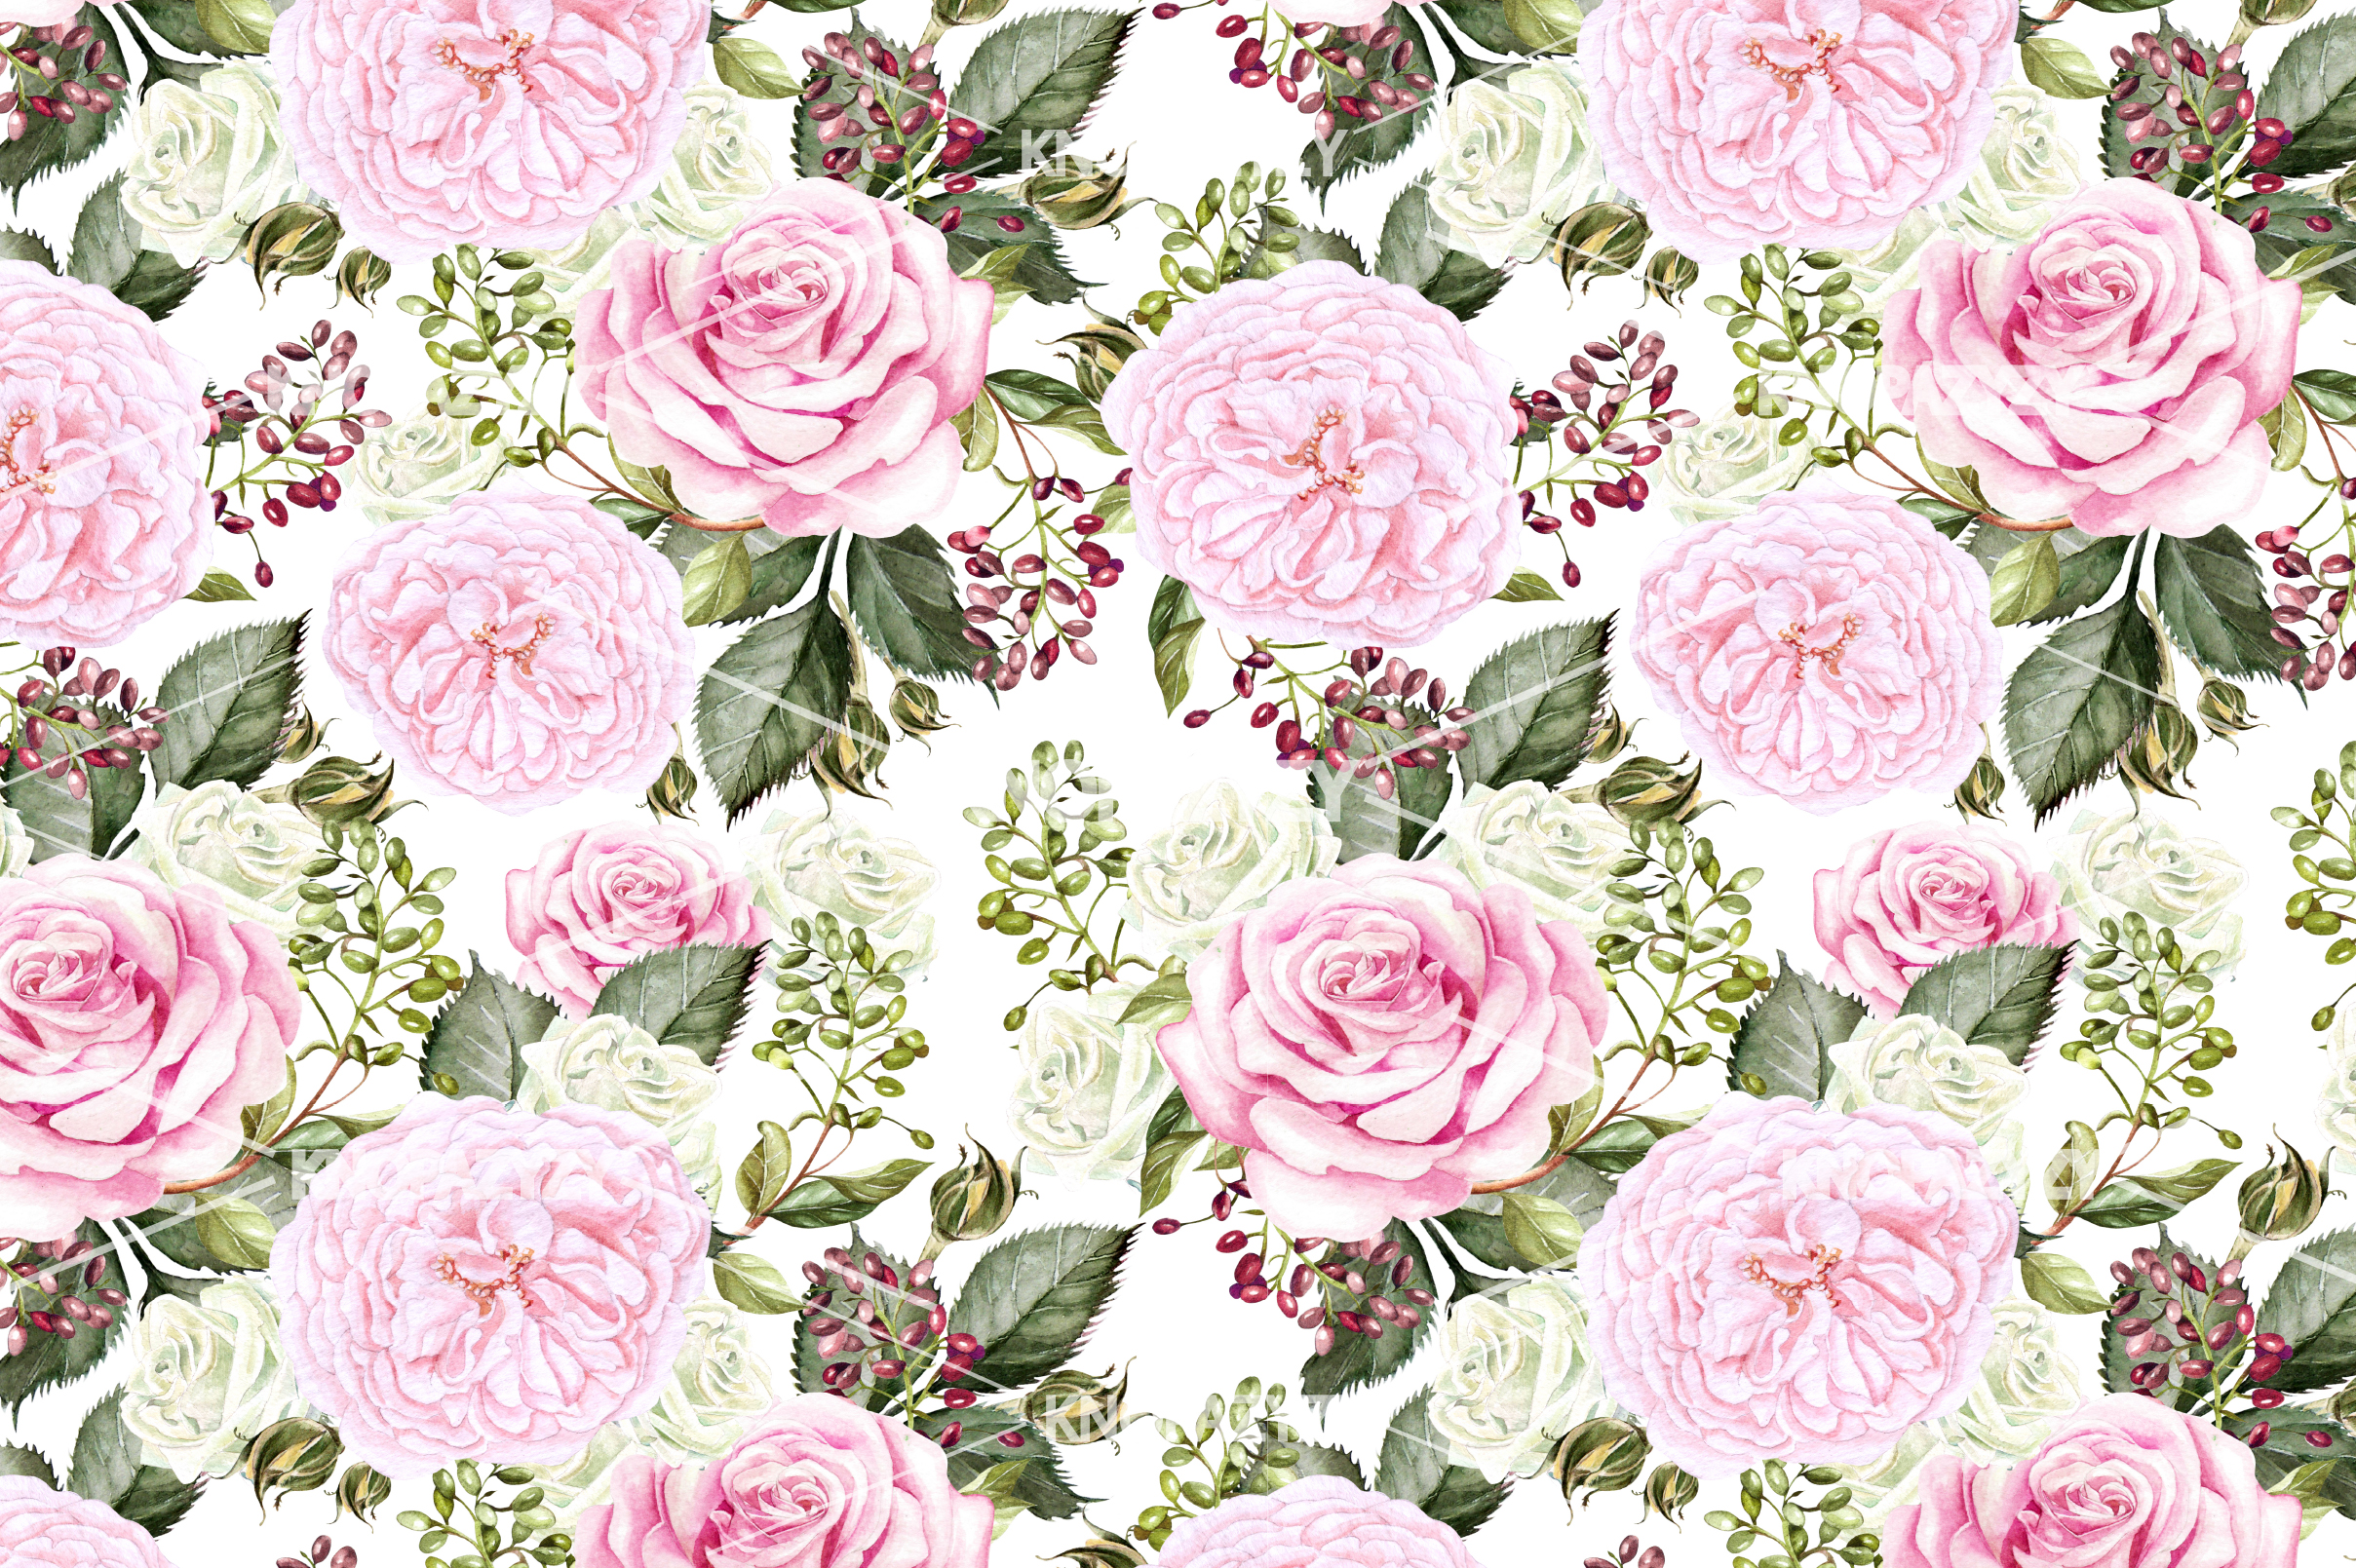 14 Hand drawn watercolor patterns example image 15